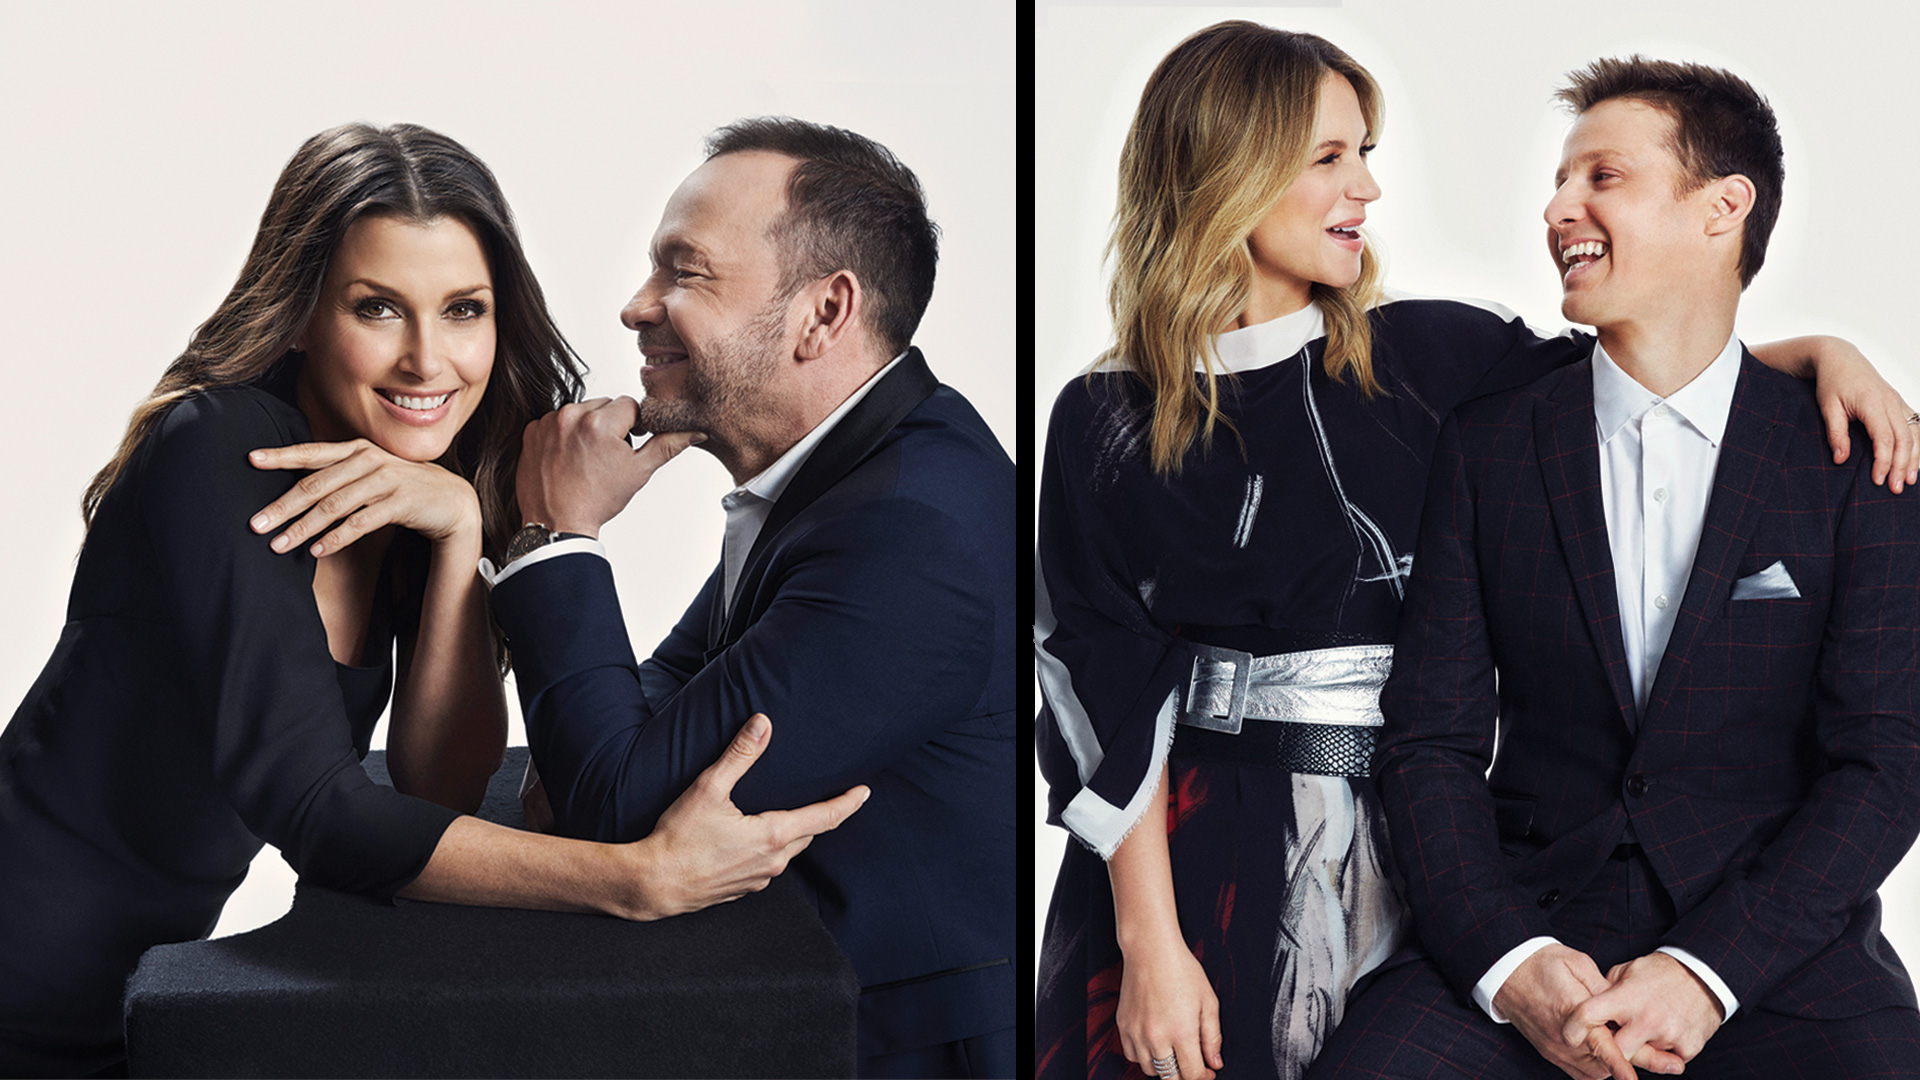 These stylish Blue Bloods stars clean up very nice in these exclusive photos!